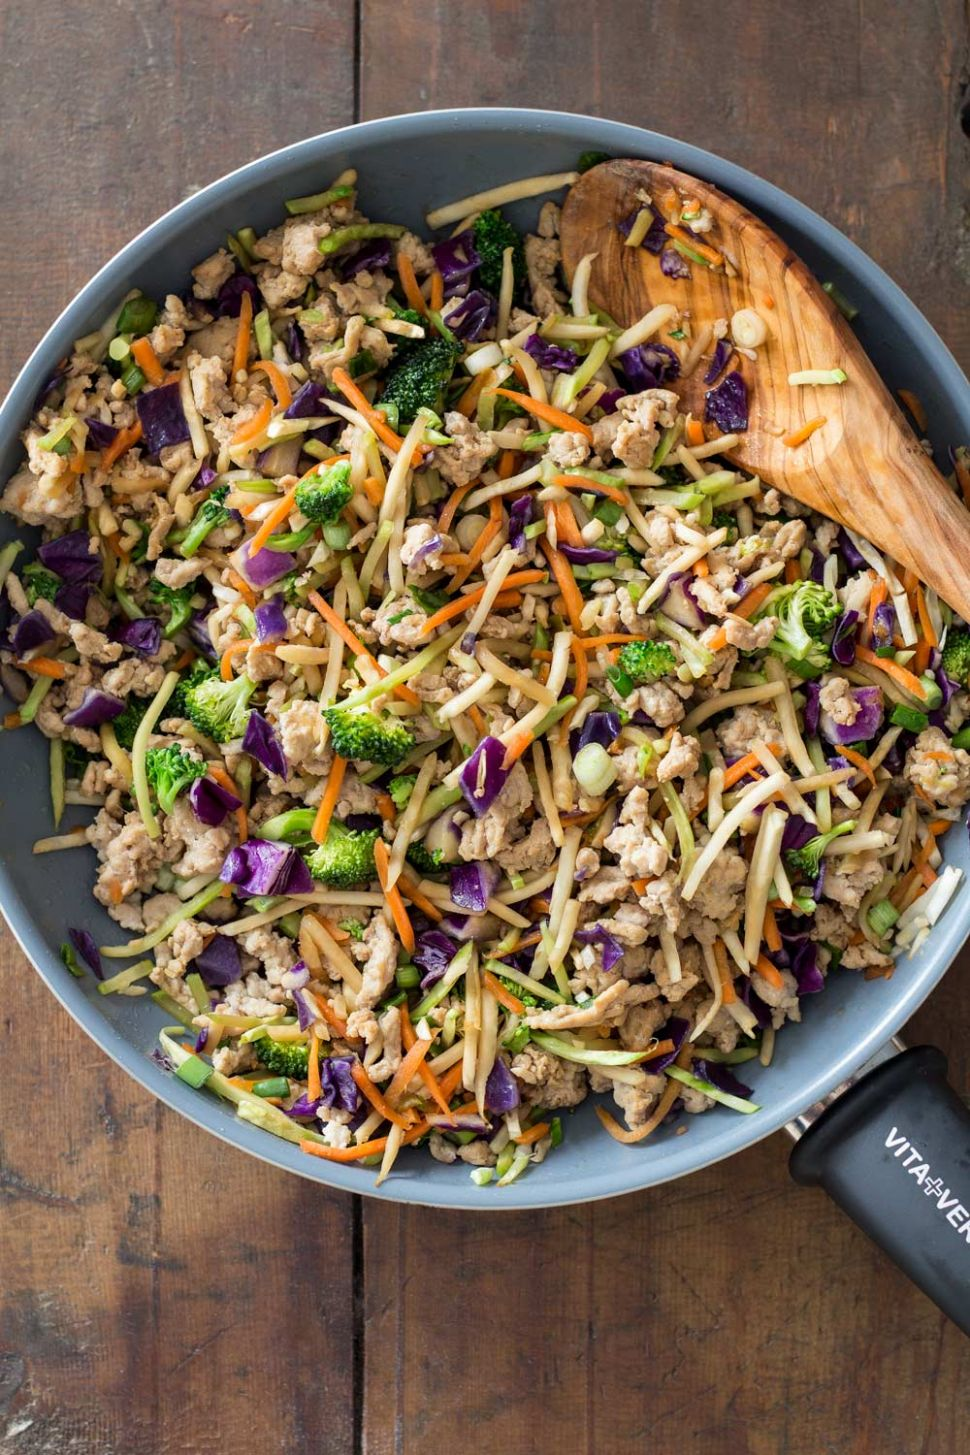 The Ultimate Low-Carb Stir-Fry